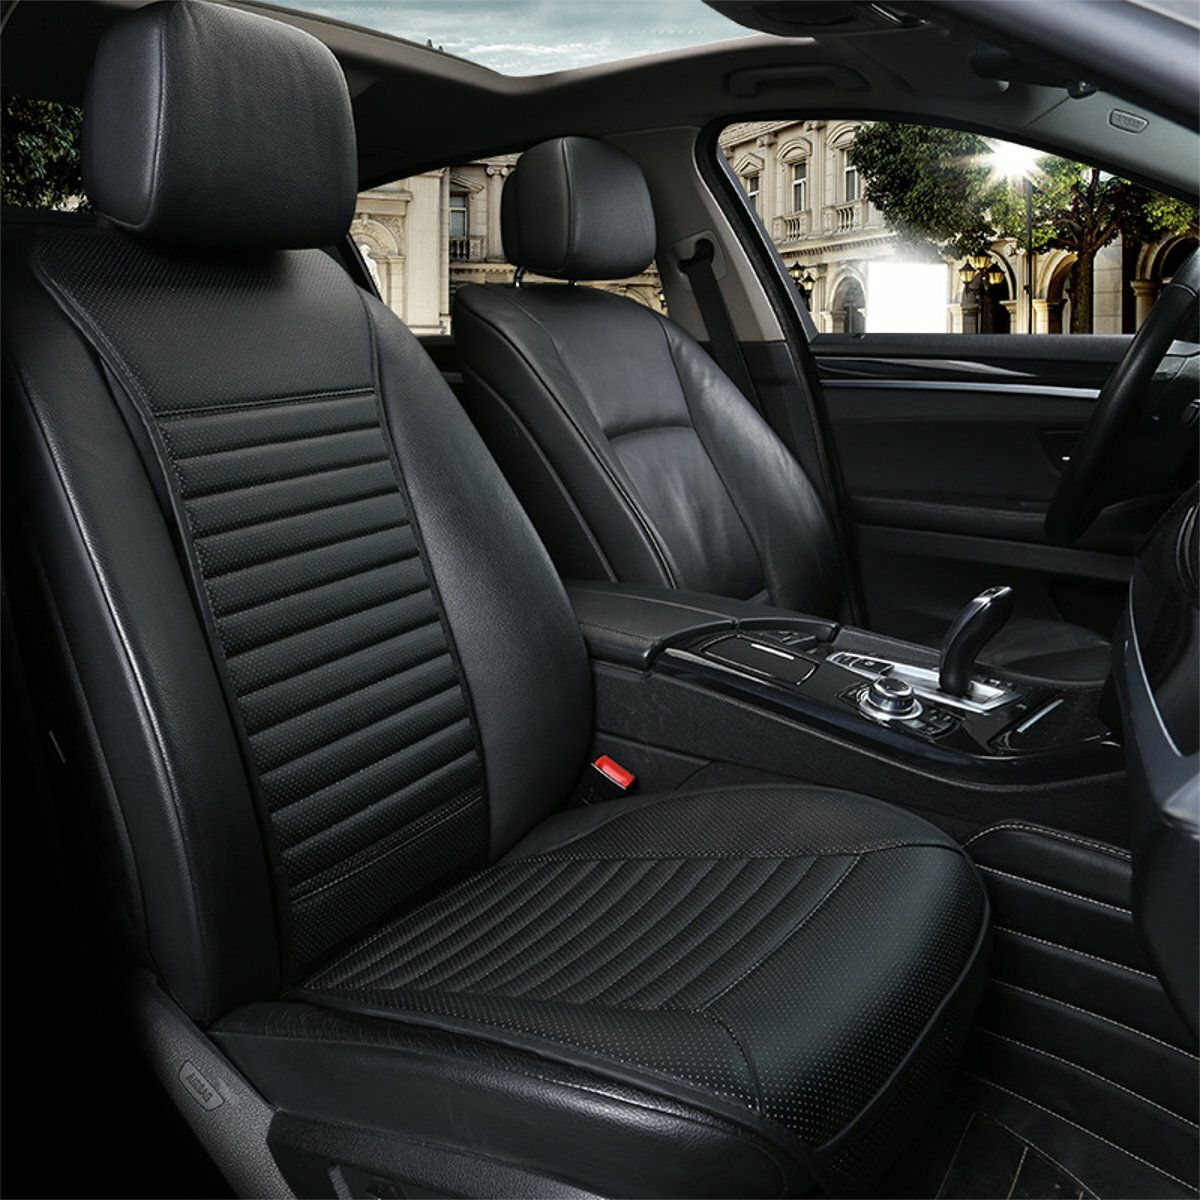 Car Seat Cushions Australia 125x50cm Pu Leather Car Seat Cushion Cover Chair Protector Mat Pad Universal